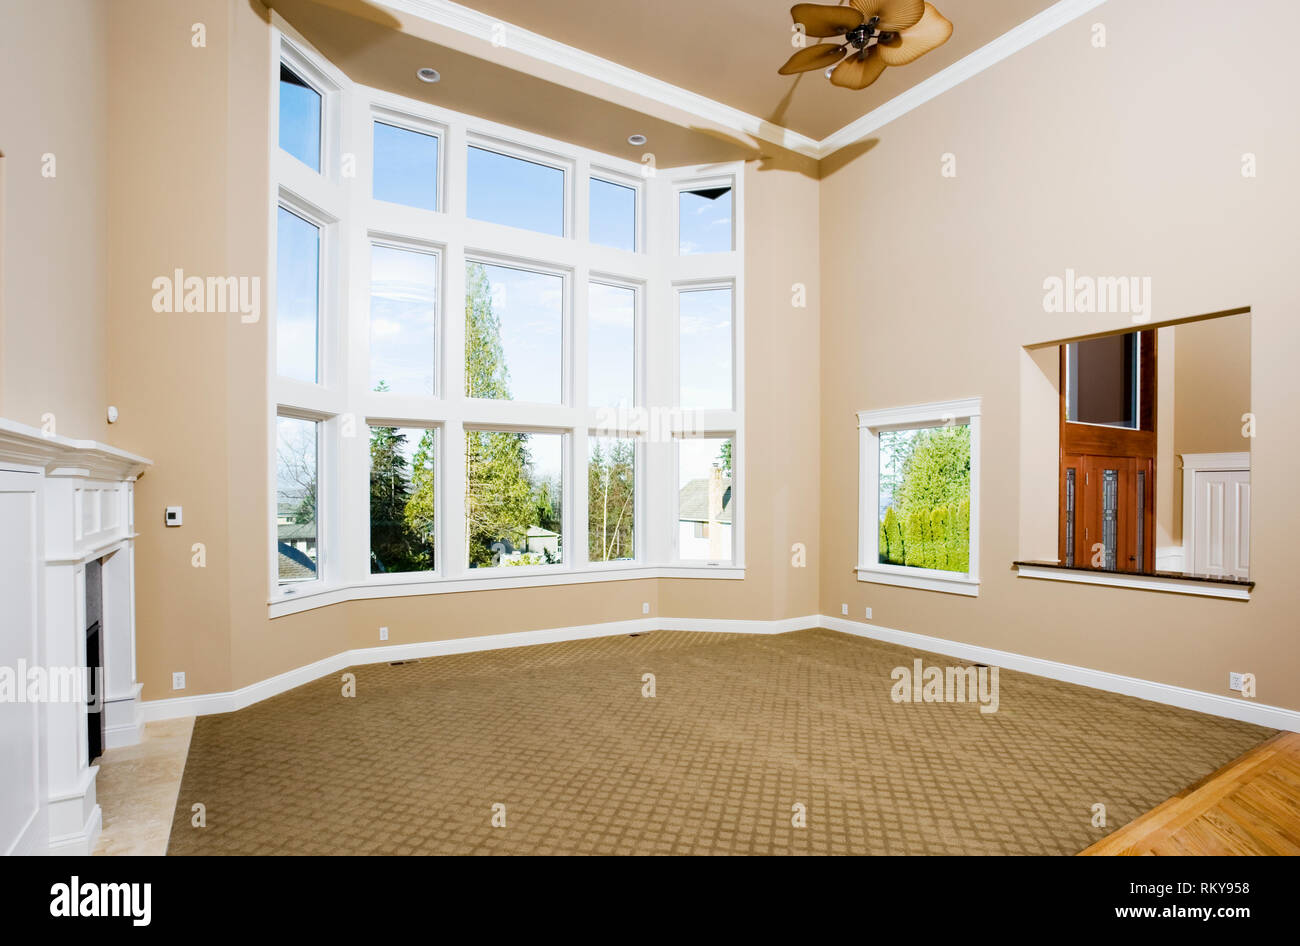 Empty Living Room With Large Windows Stock Photo Alamy